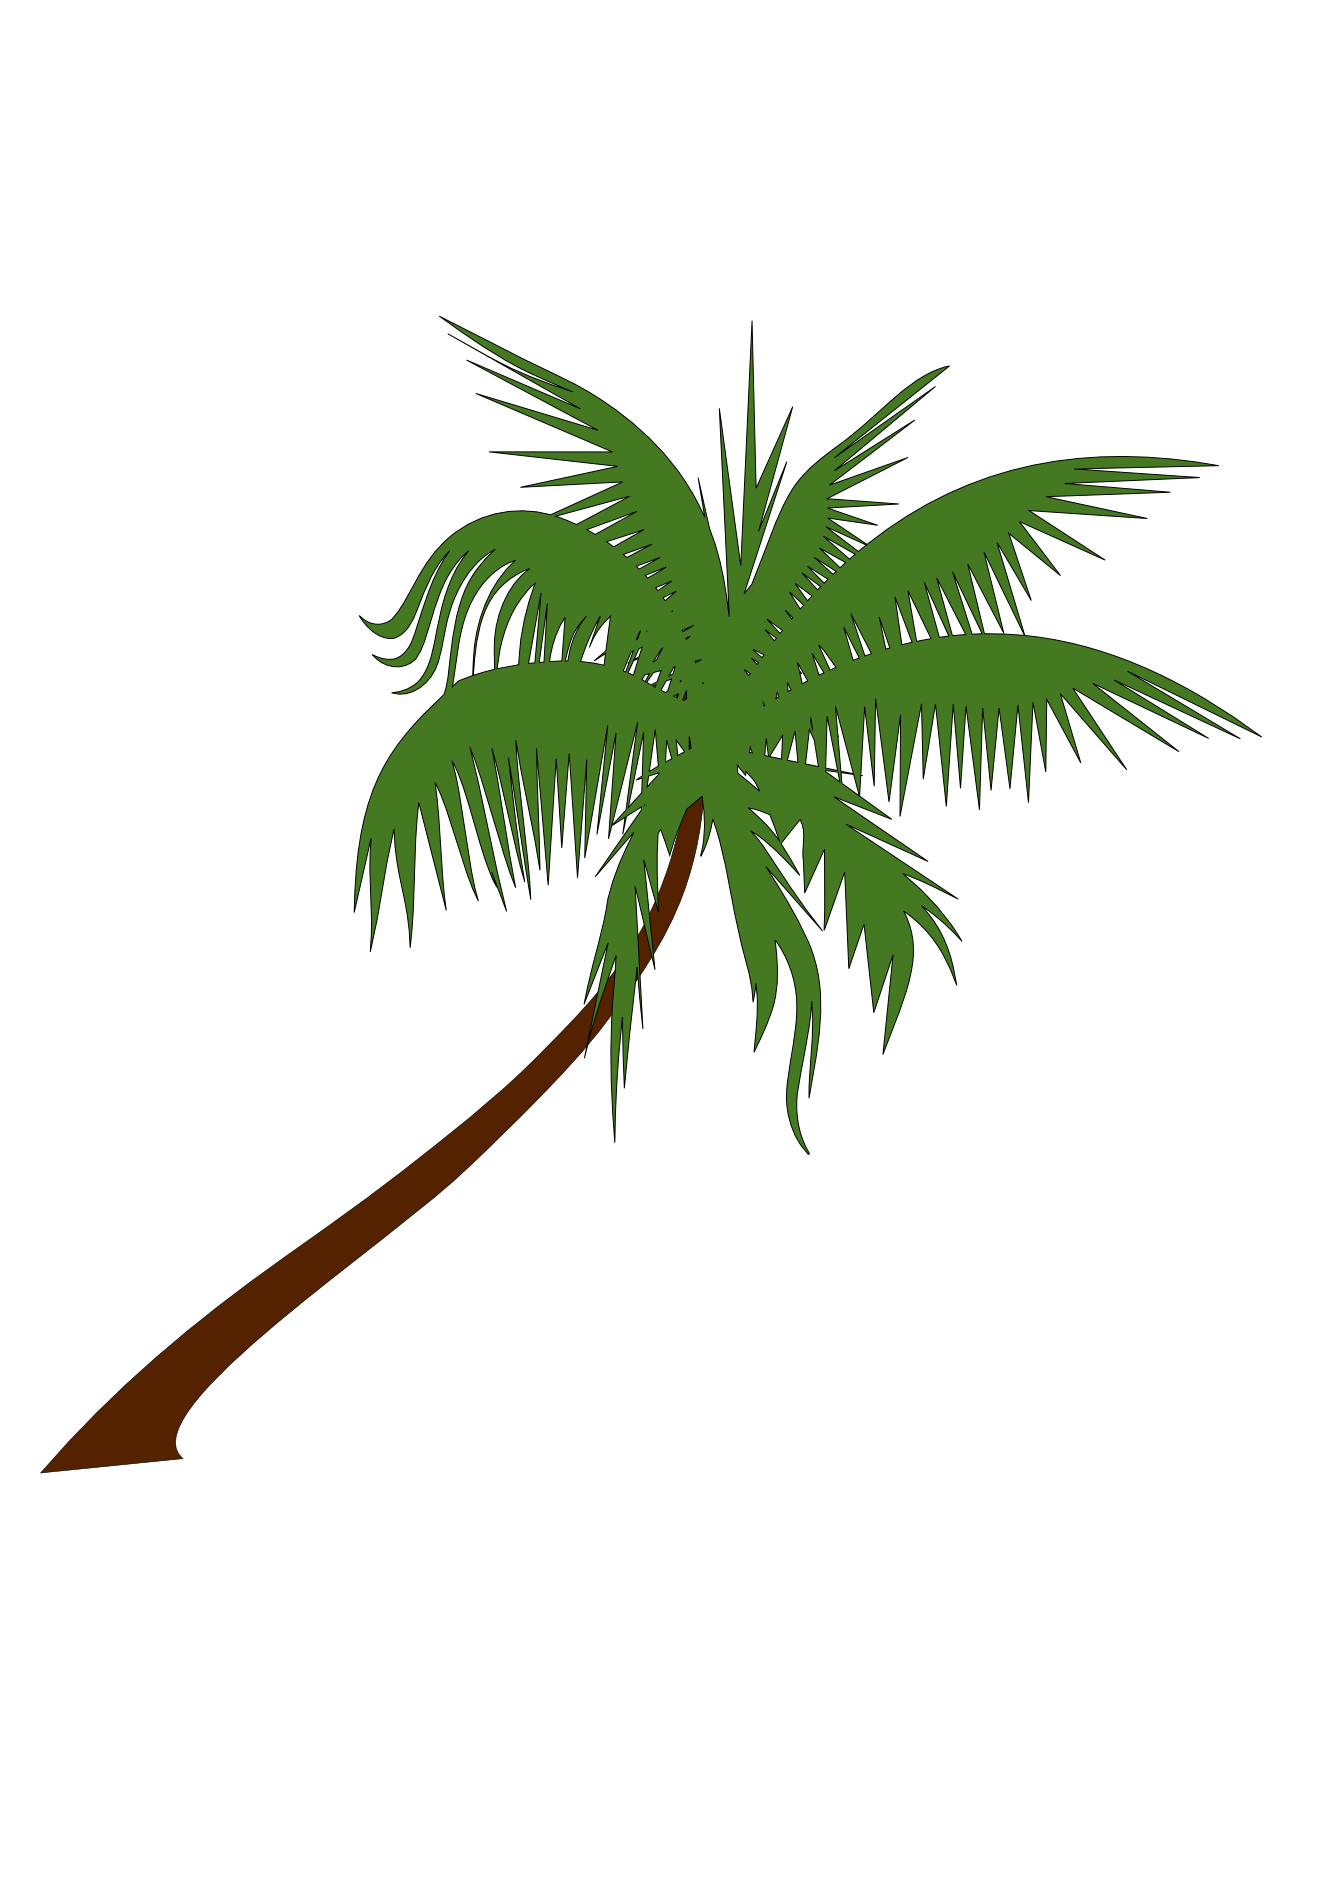 Line Drawing Palm Tree : Palm tree line drawing clipart best